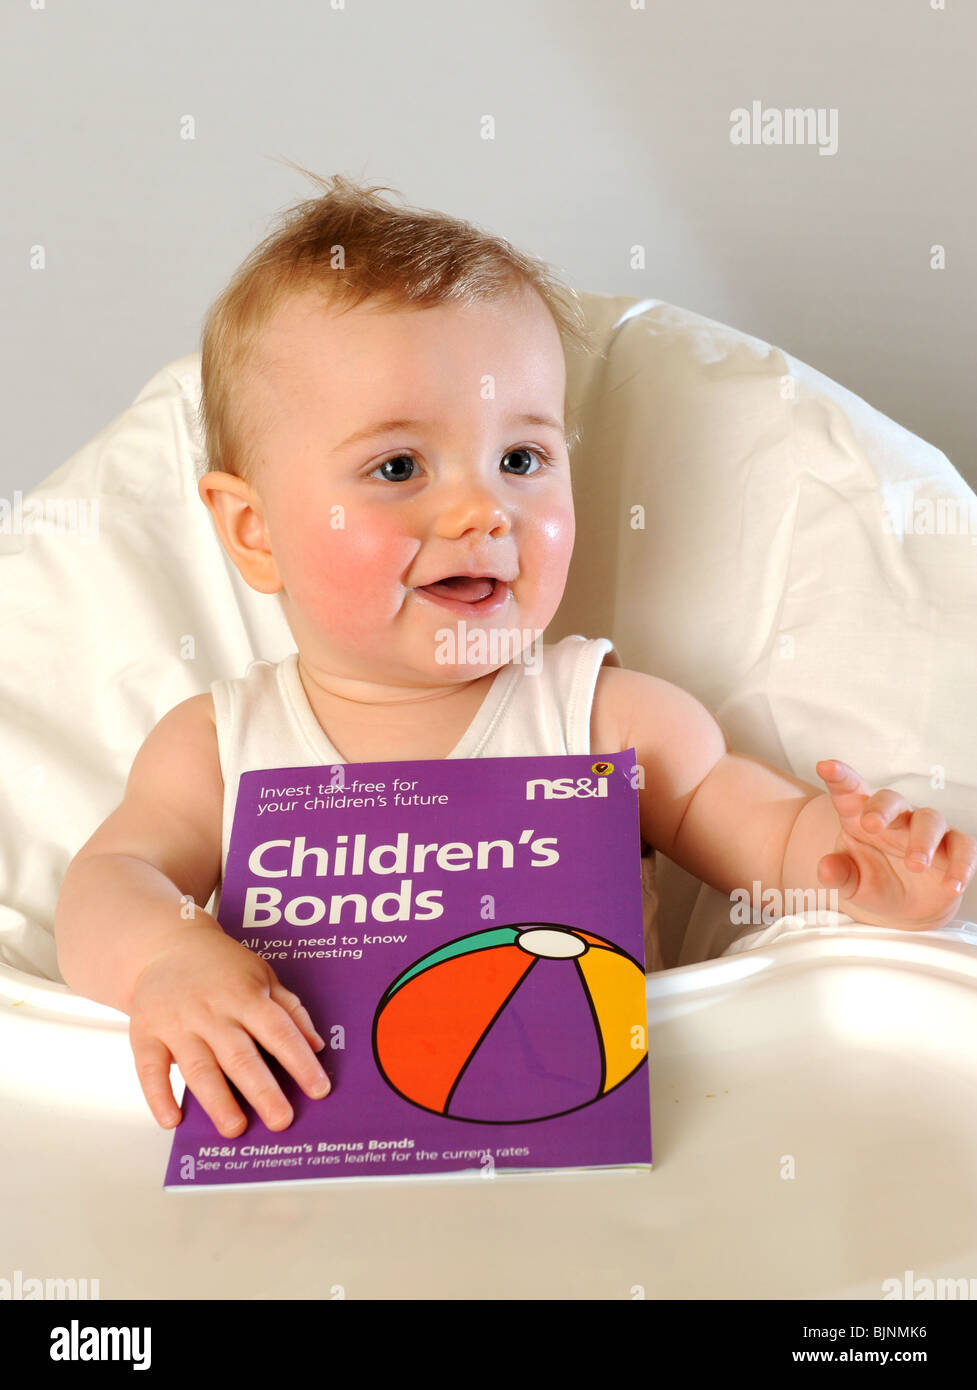 Baby boy with National Savings Childrens Bonds leaflet - Stock Image